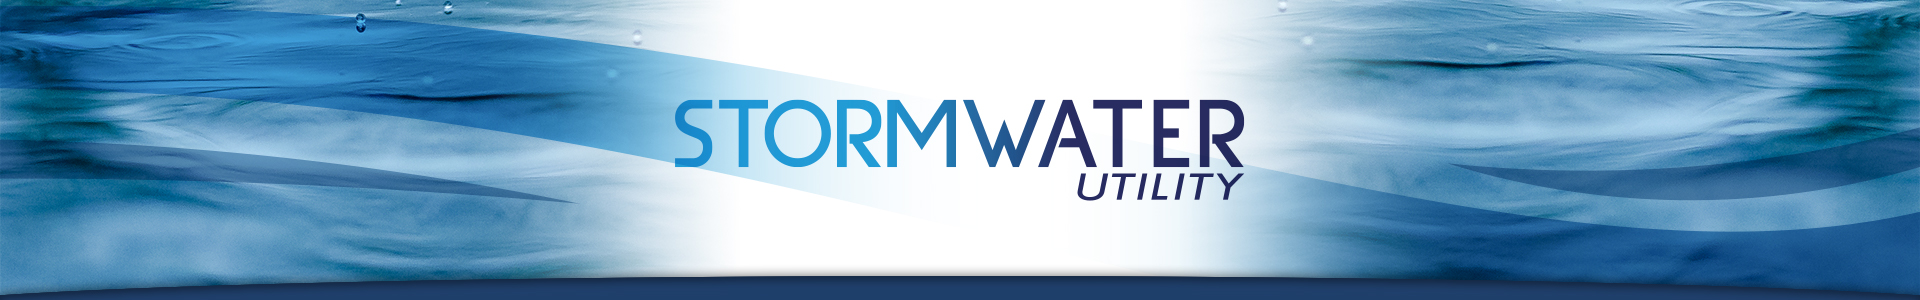 Stormwater Utility Department Header - Click for home page